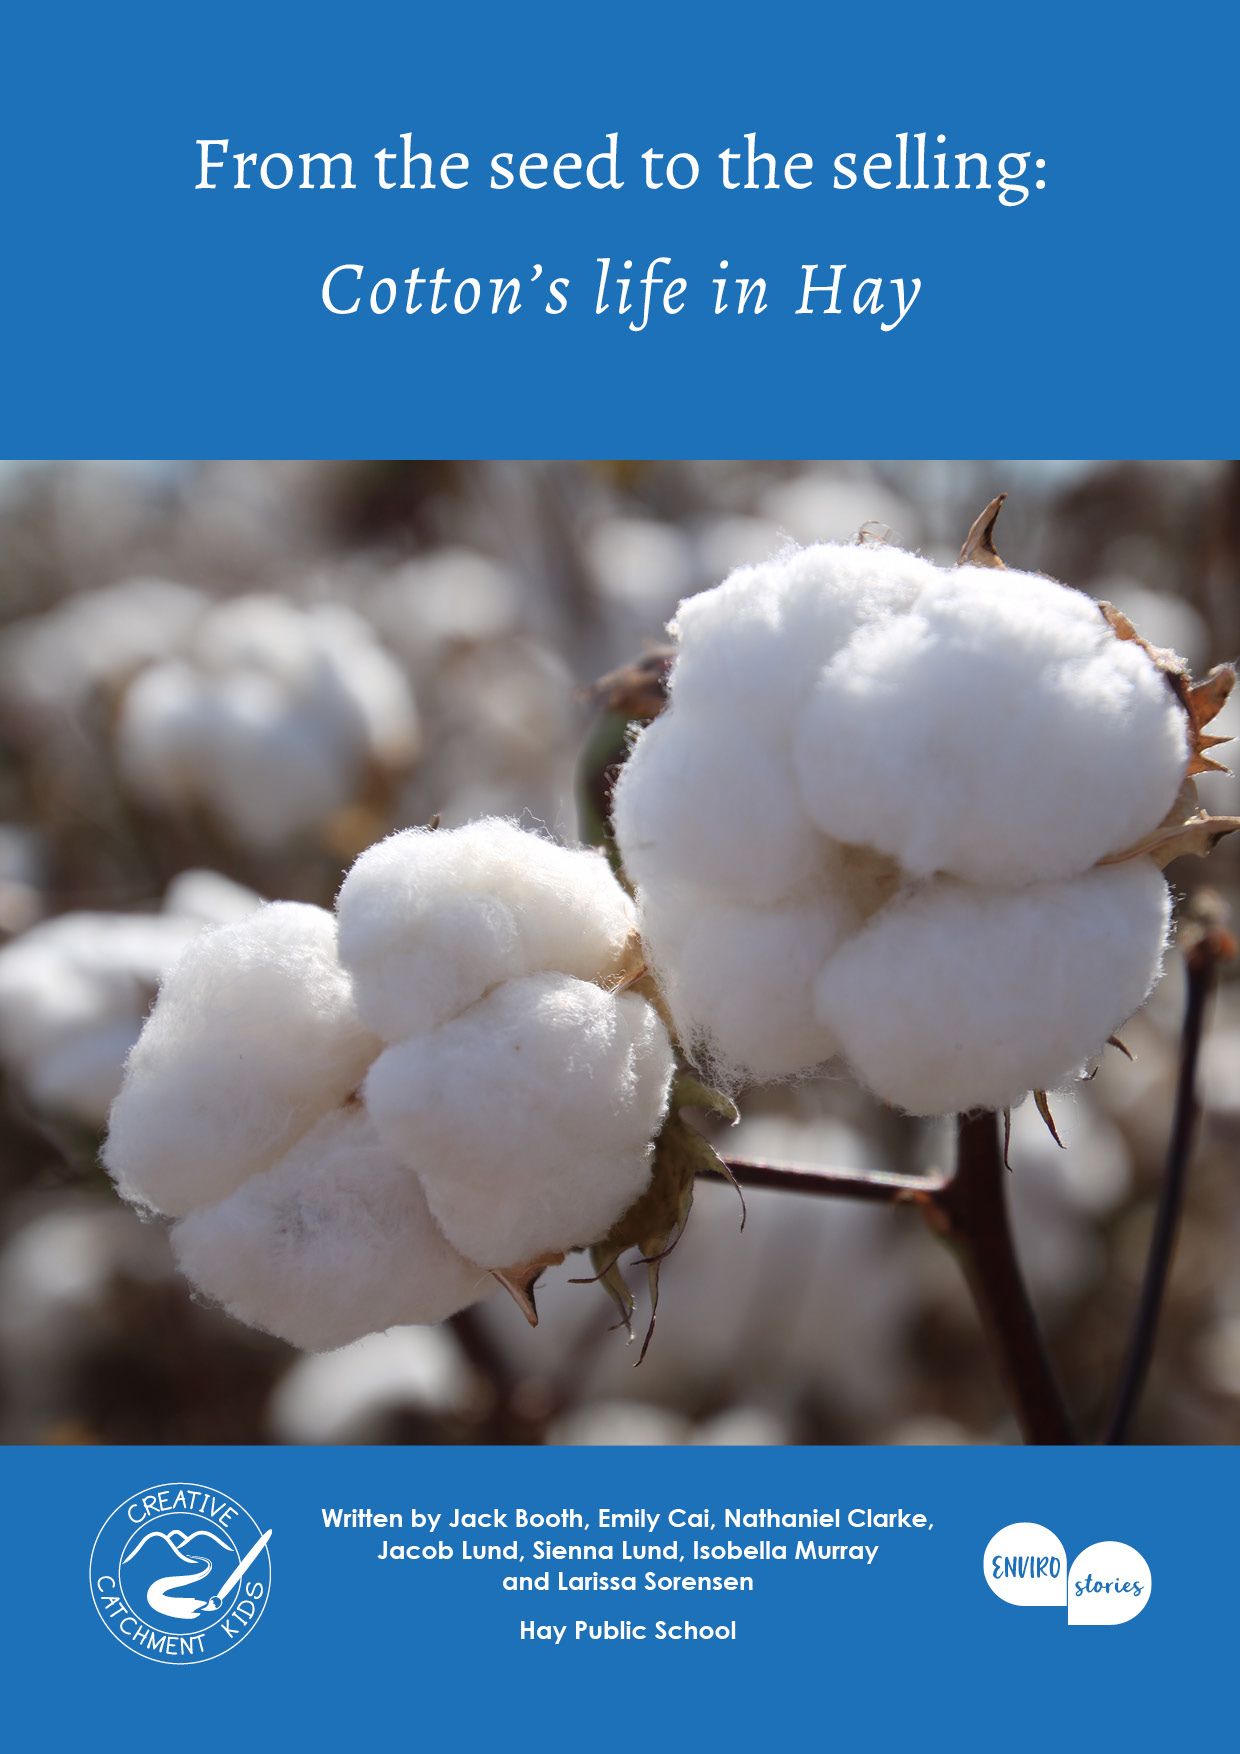 From the seed to the selling: Cotton's life in Hay